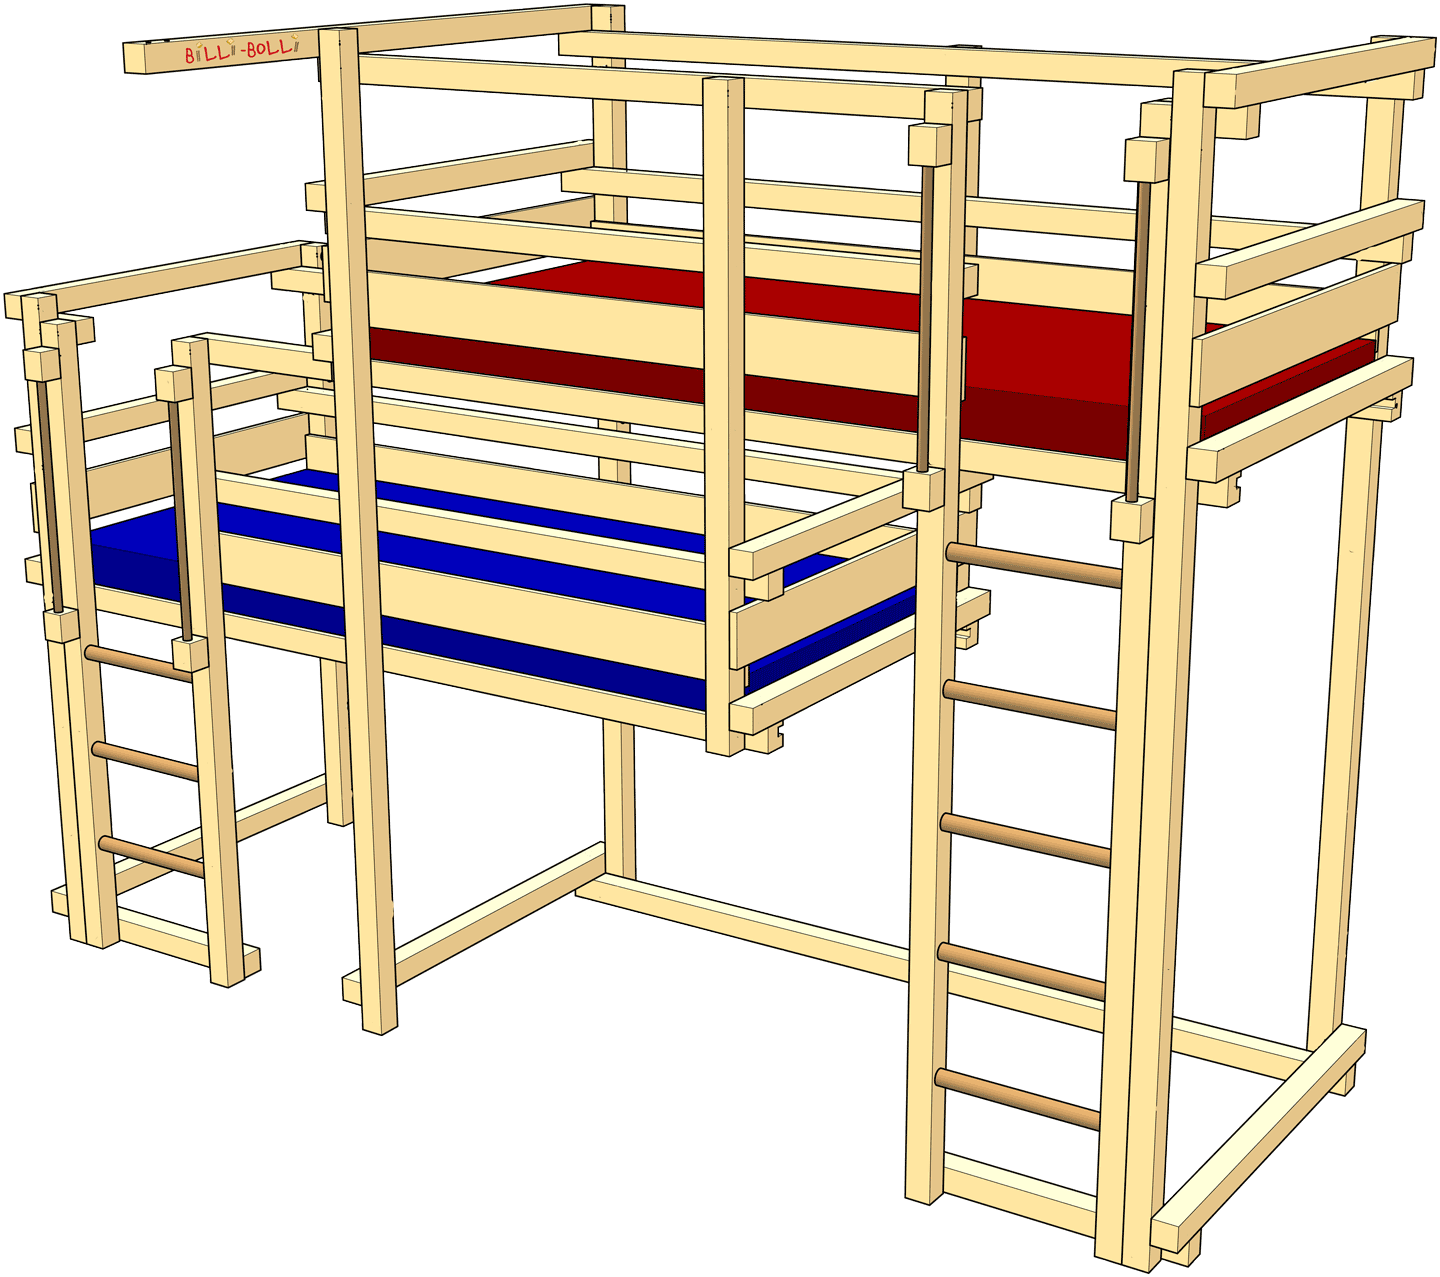 Both-Up Beds, Type 2B